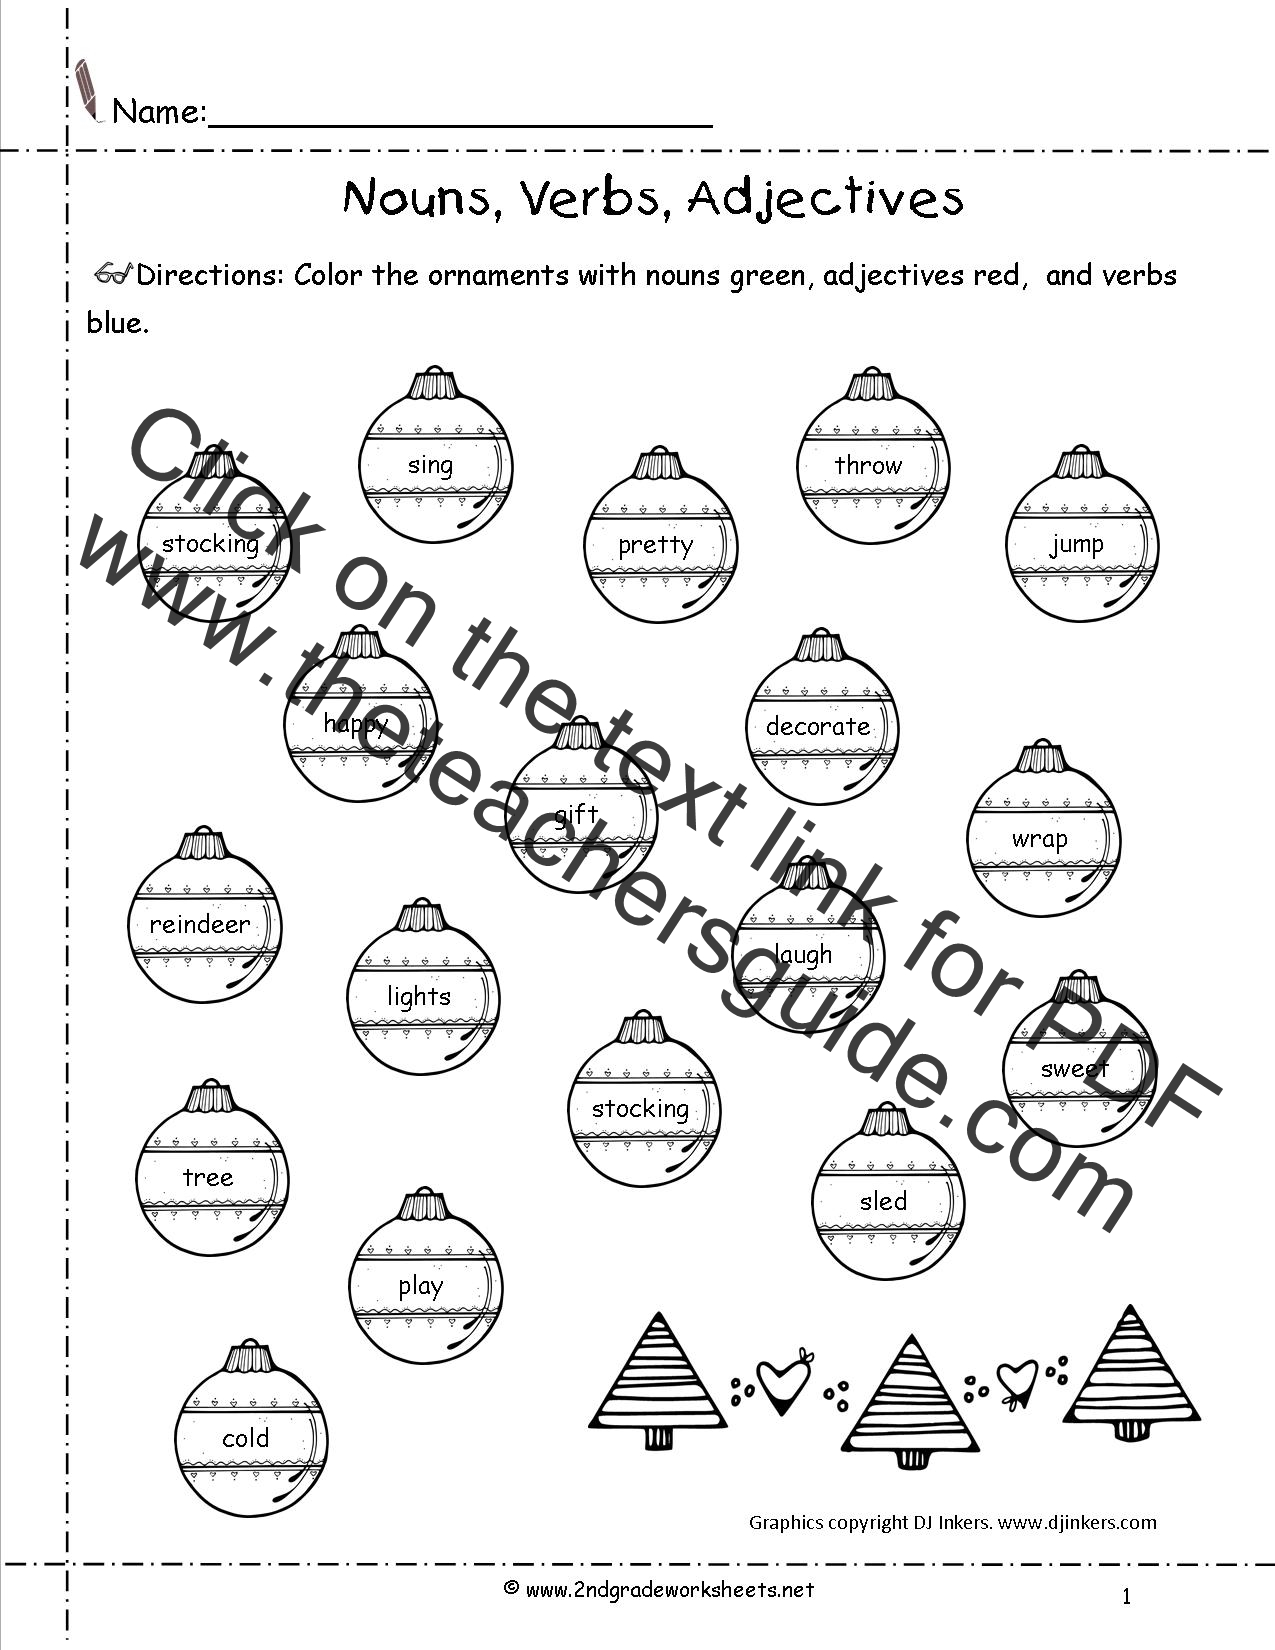 worksheet Nouns And Verbs Worksheets worksheets nouns and verbs the best most comprehensive noun verb sort 1st grade math literacy for february planning